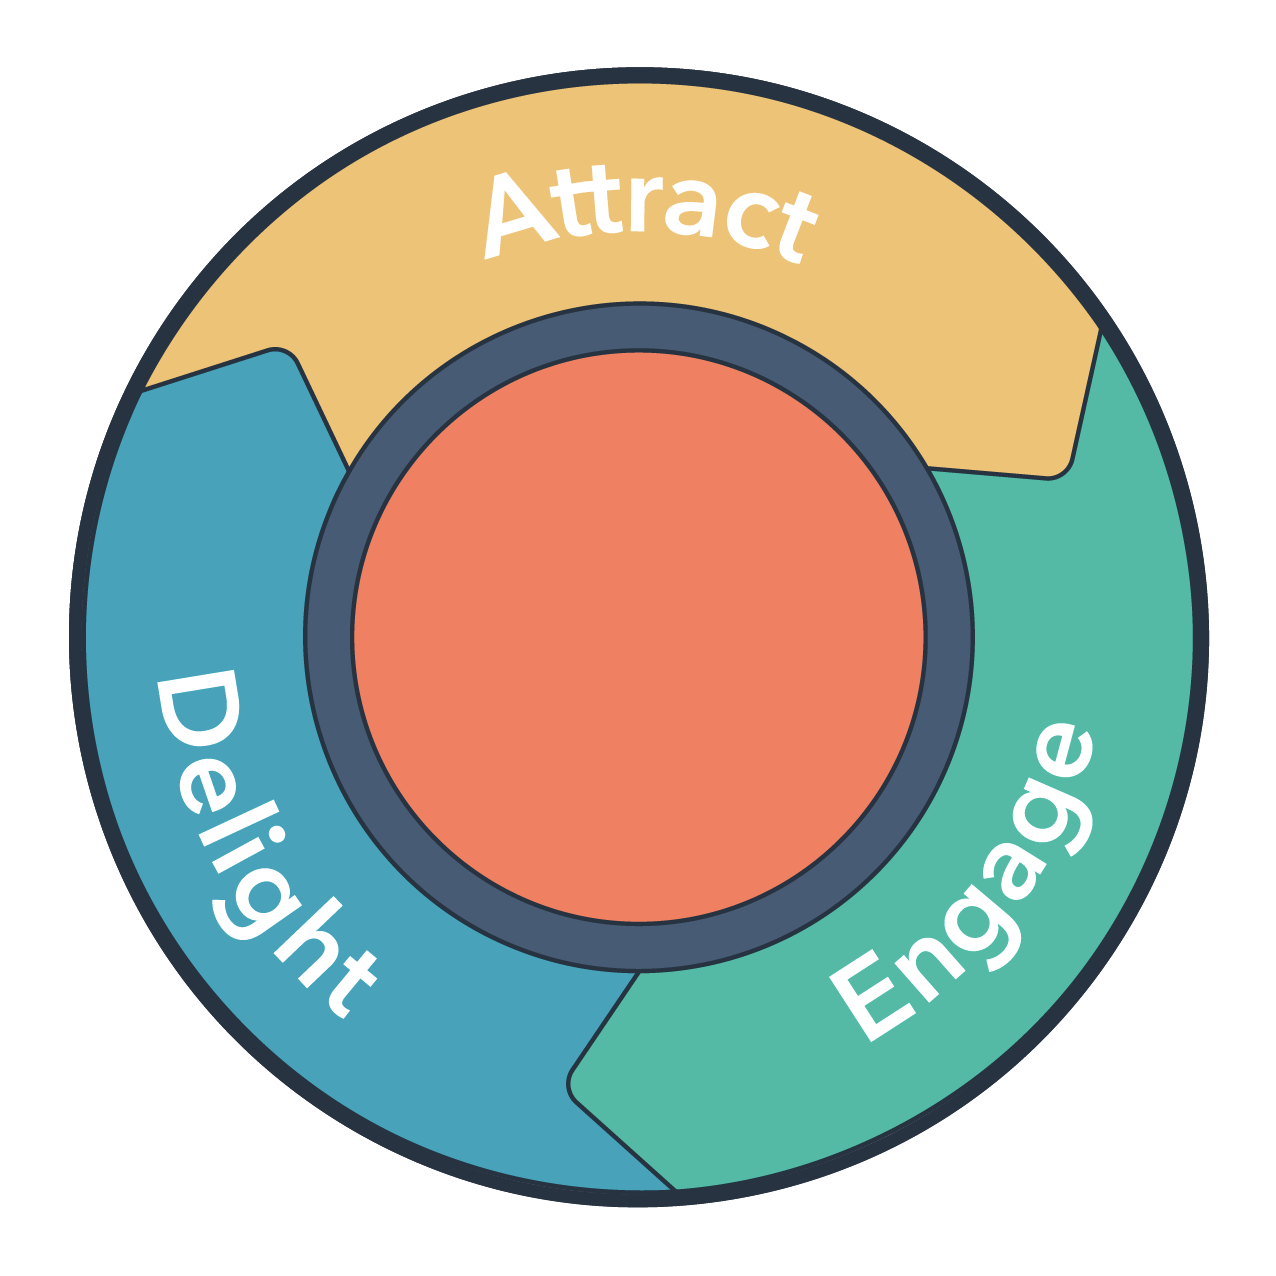 the attract, engage, delight approach to inbound lead conversion